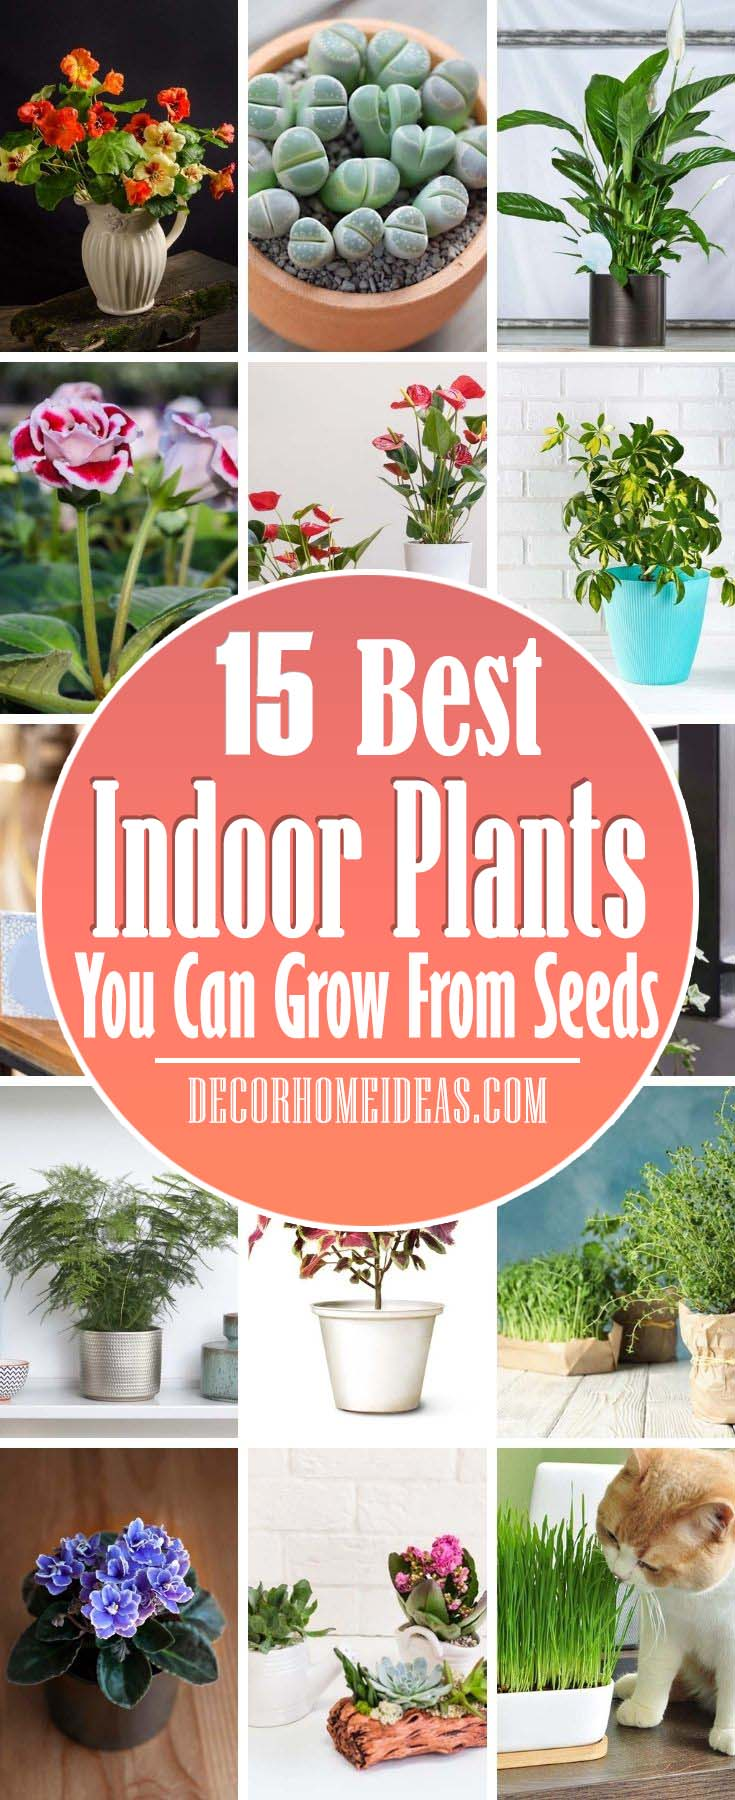 Best Indoor Plants You Can Grow From Seeds. Indoor gardening sounds like fun, but most of us have no idea where to start. We rounded up the best indoor plants to grow first, so you can get the hang of it all and develop a green thumb. It's not as hard as you think. #decorhomeideas